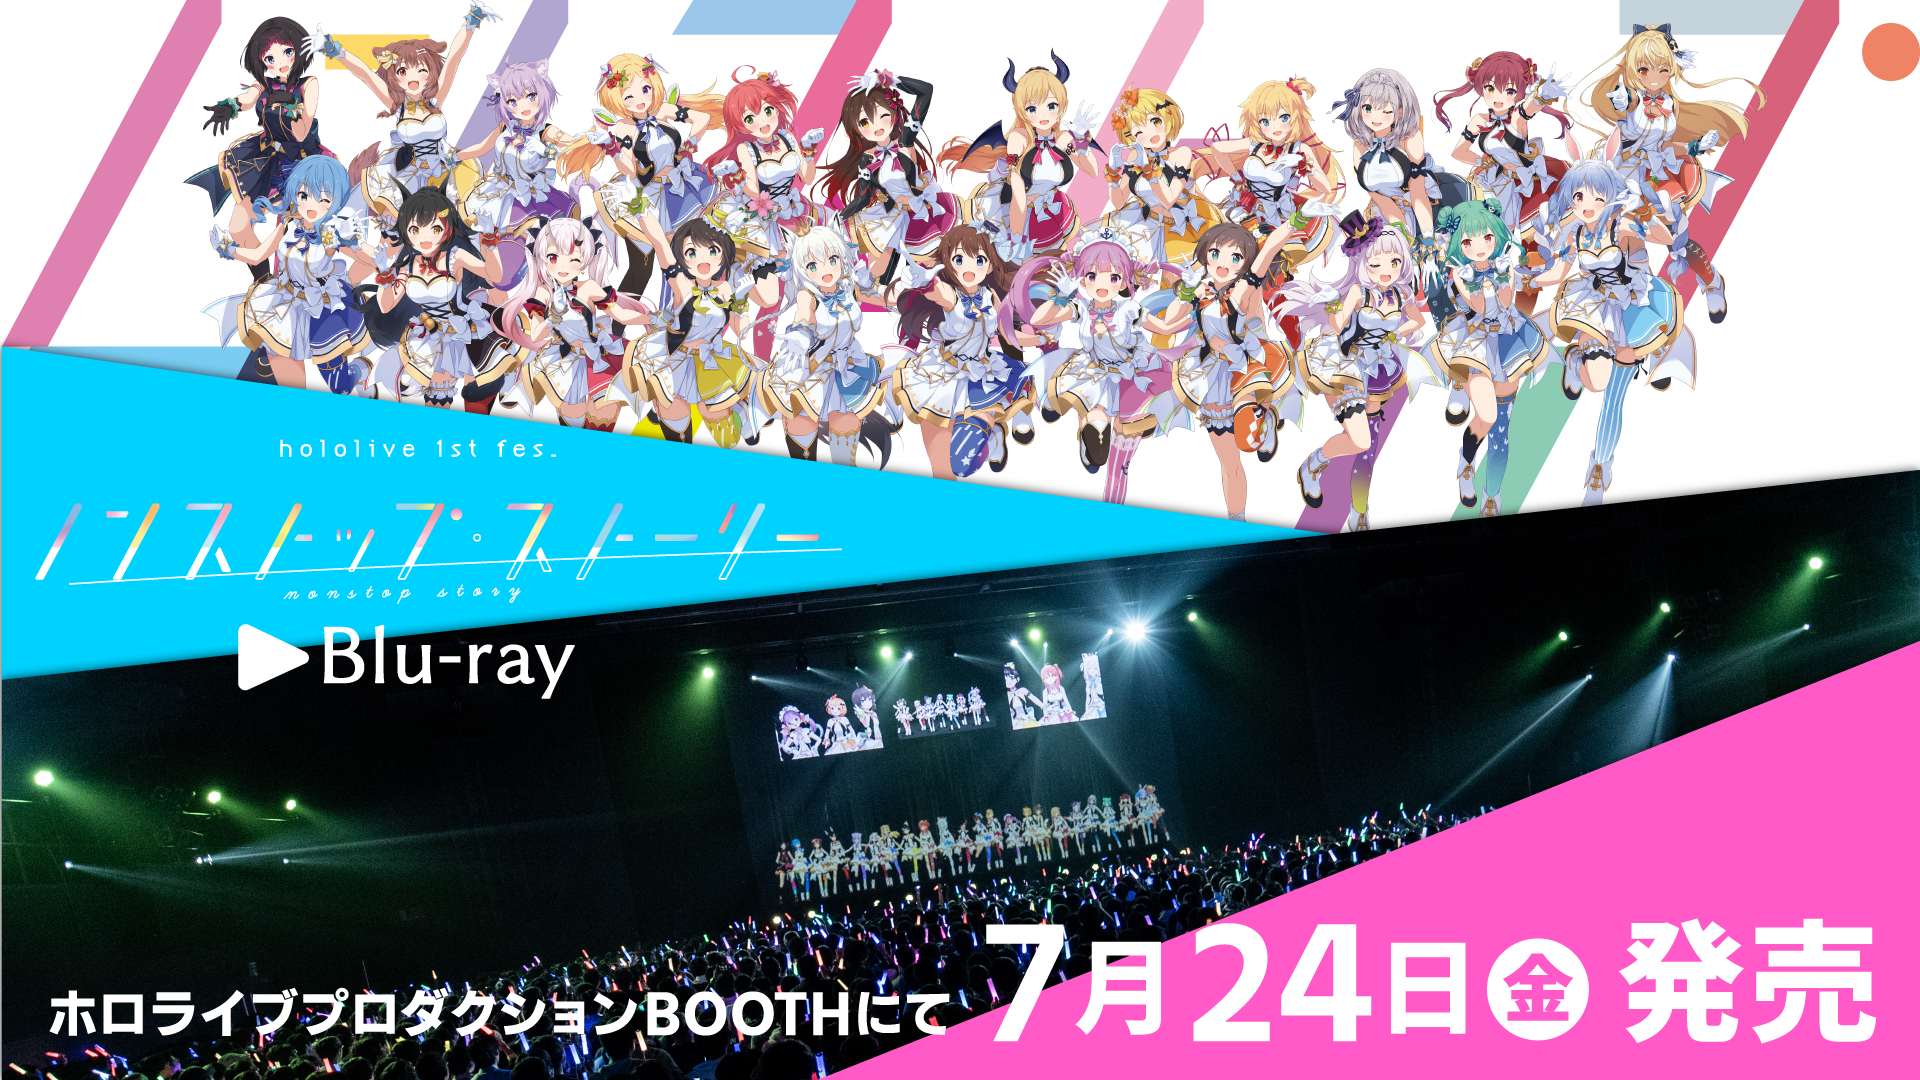 Booth Hololive